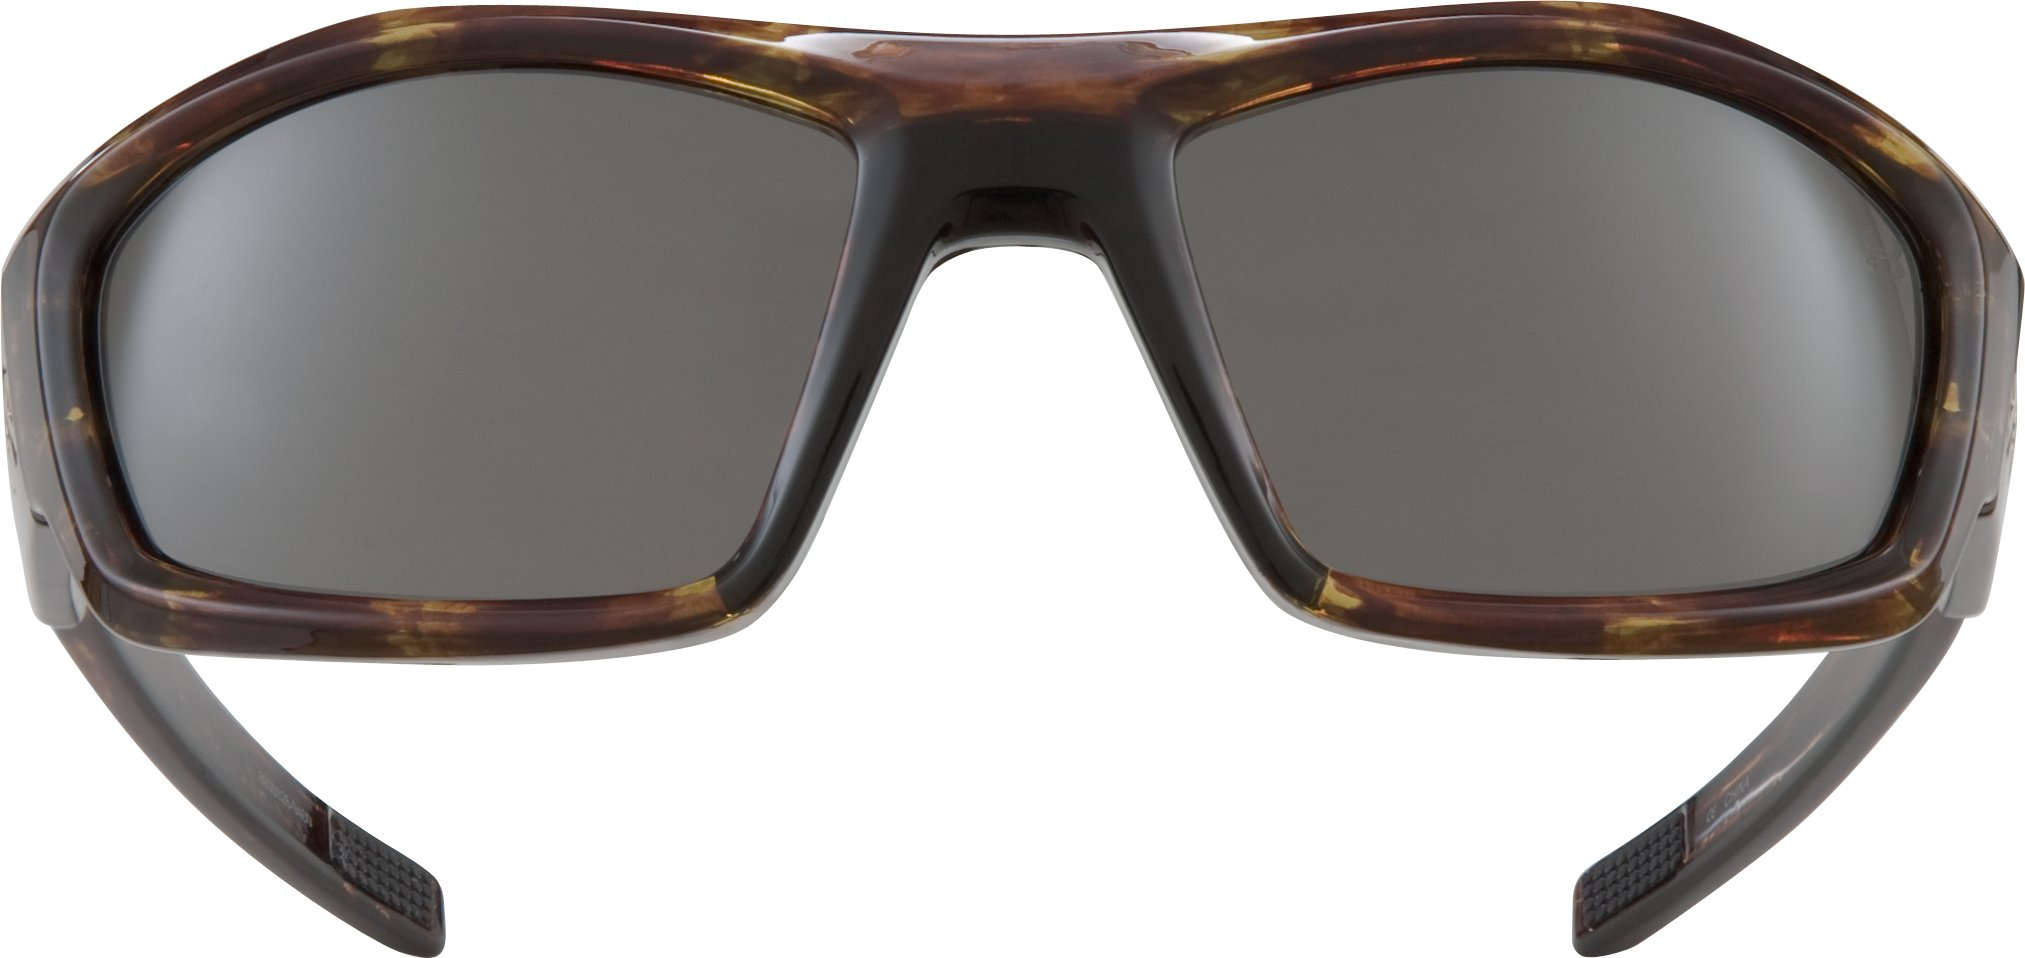 UA Power Sunglasses, Fire Tortoise